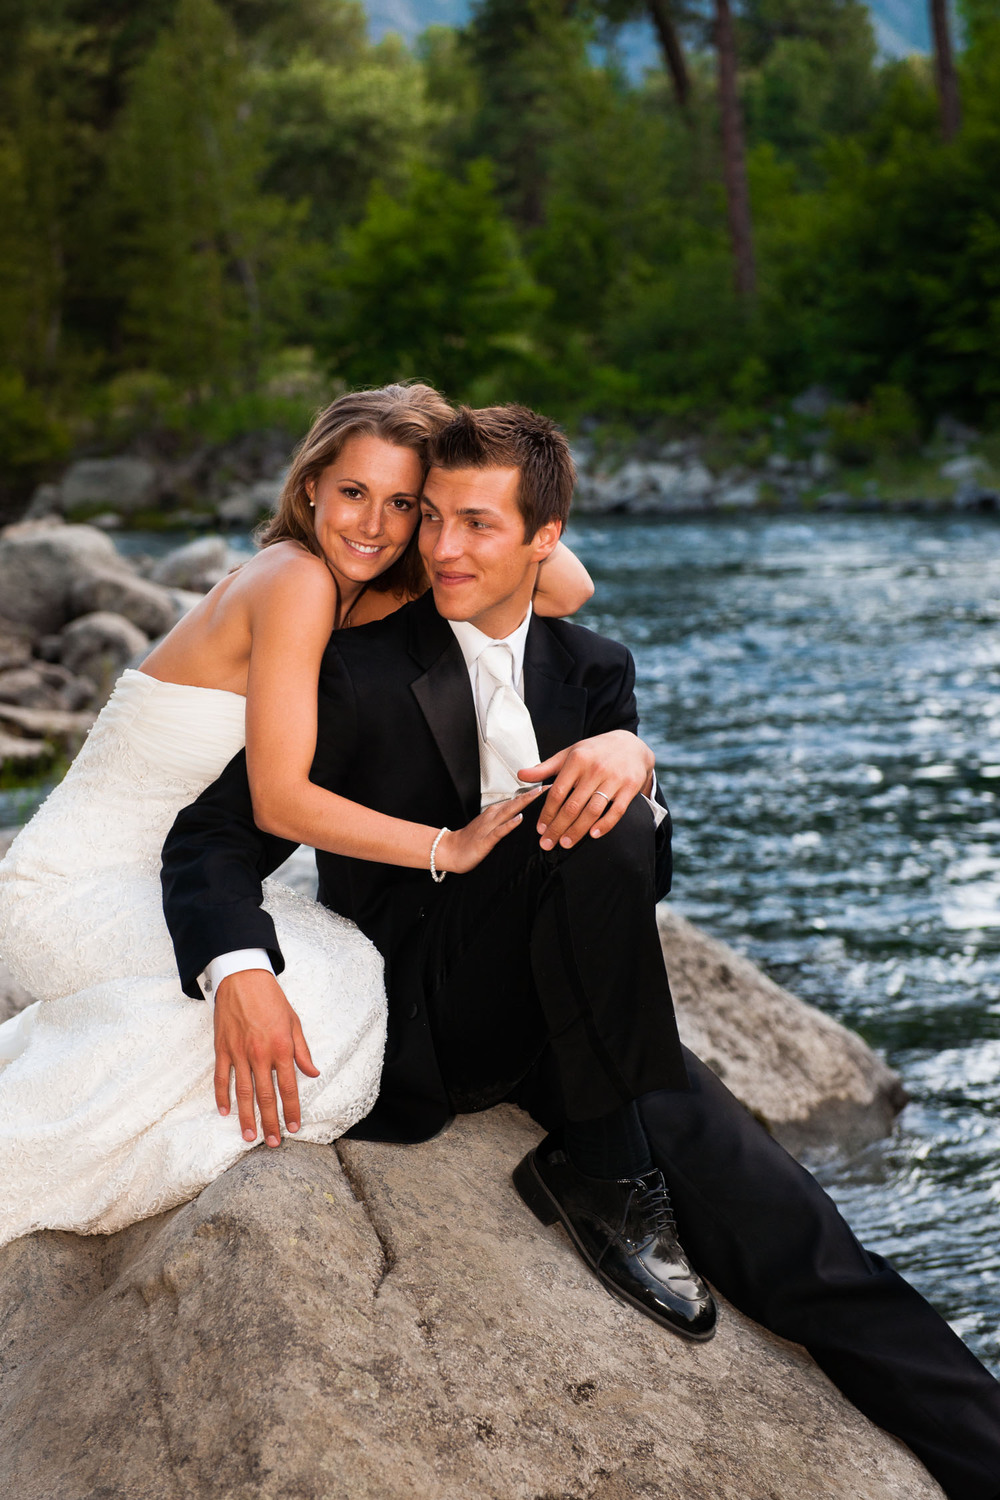 stewart_bertrand_wedding_photography_efwed-1043.jpg